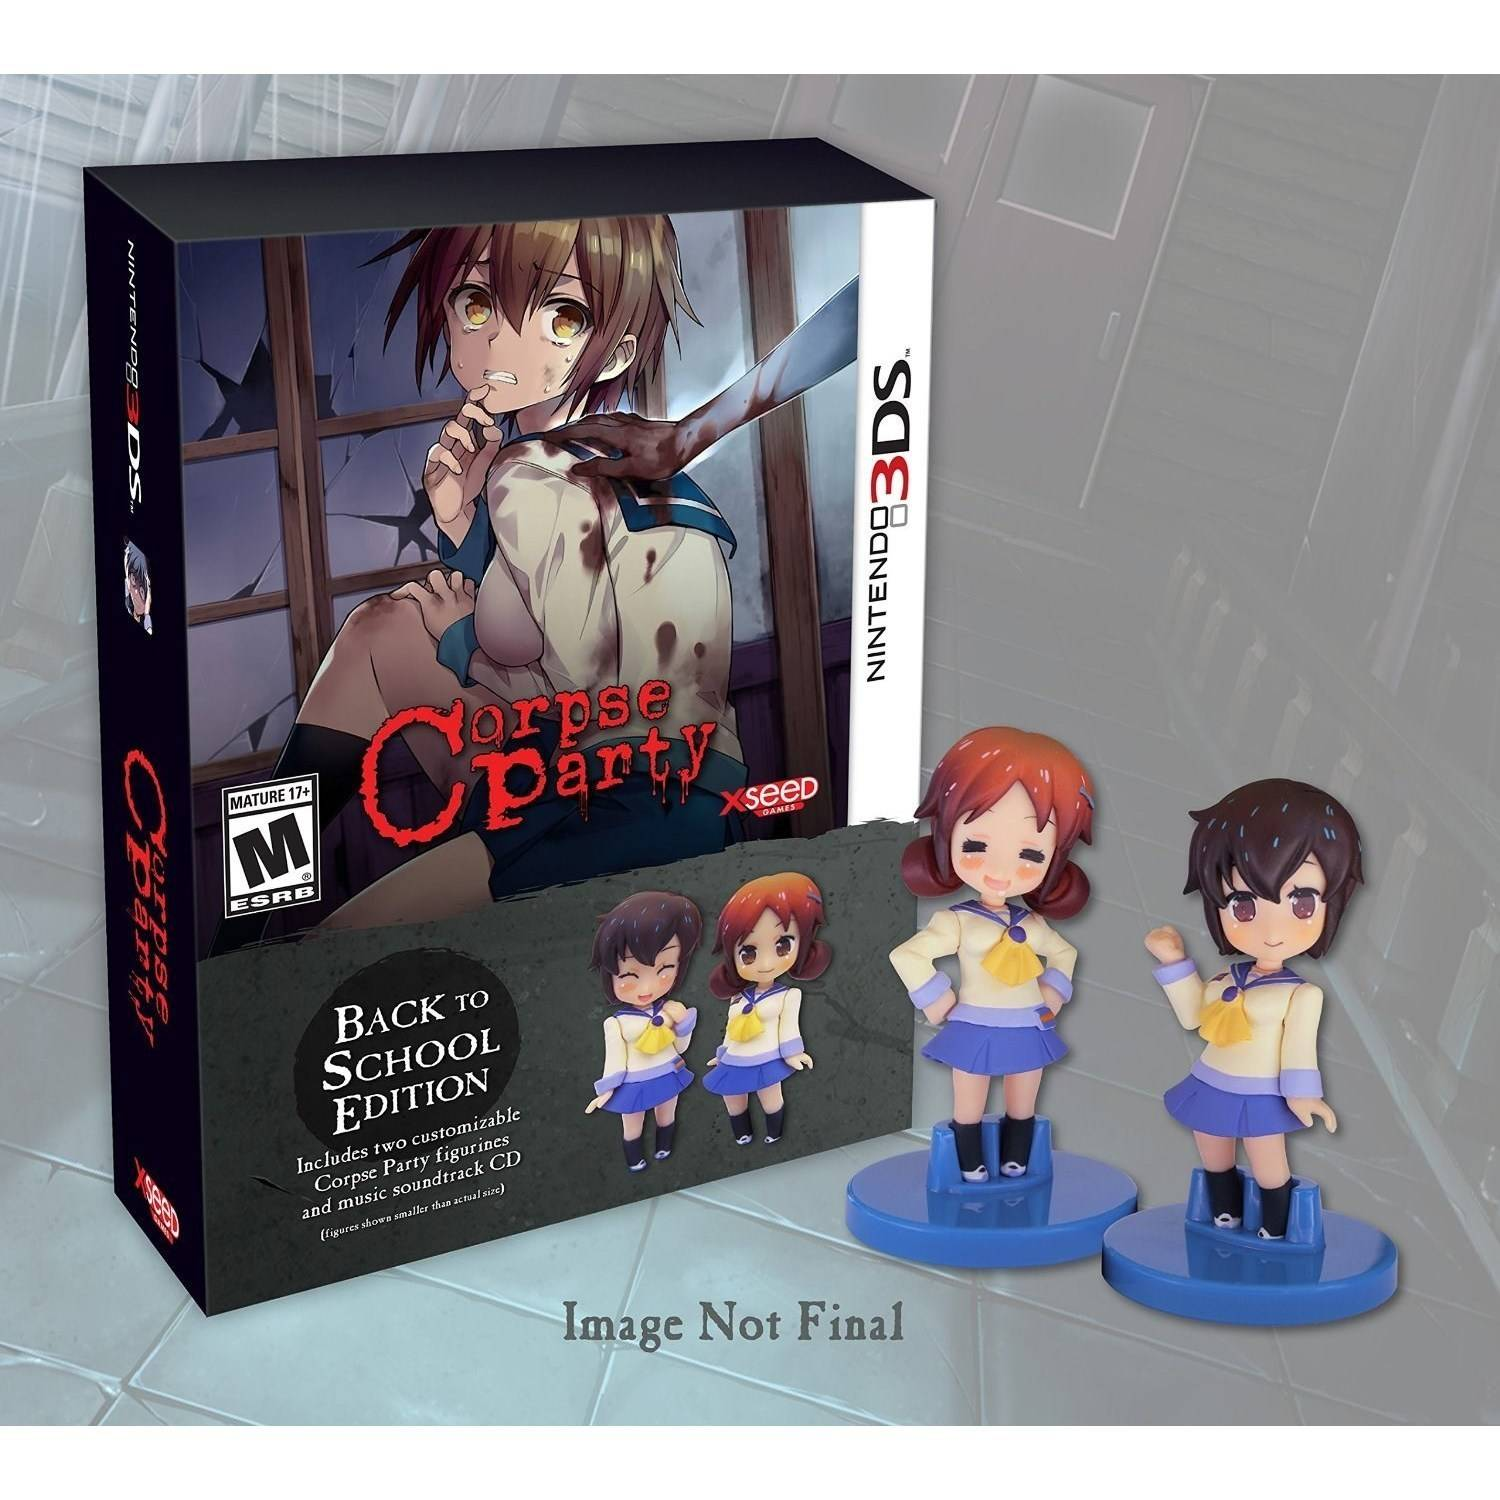 Corpse Party After School (Nintendo 3DS)